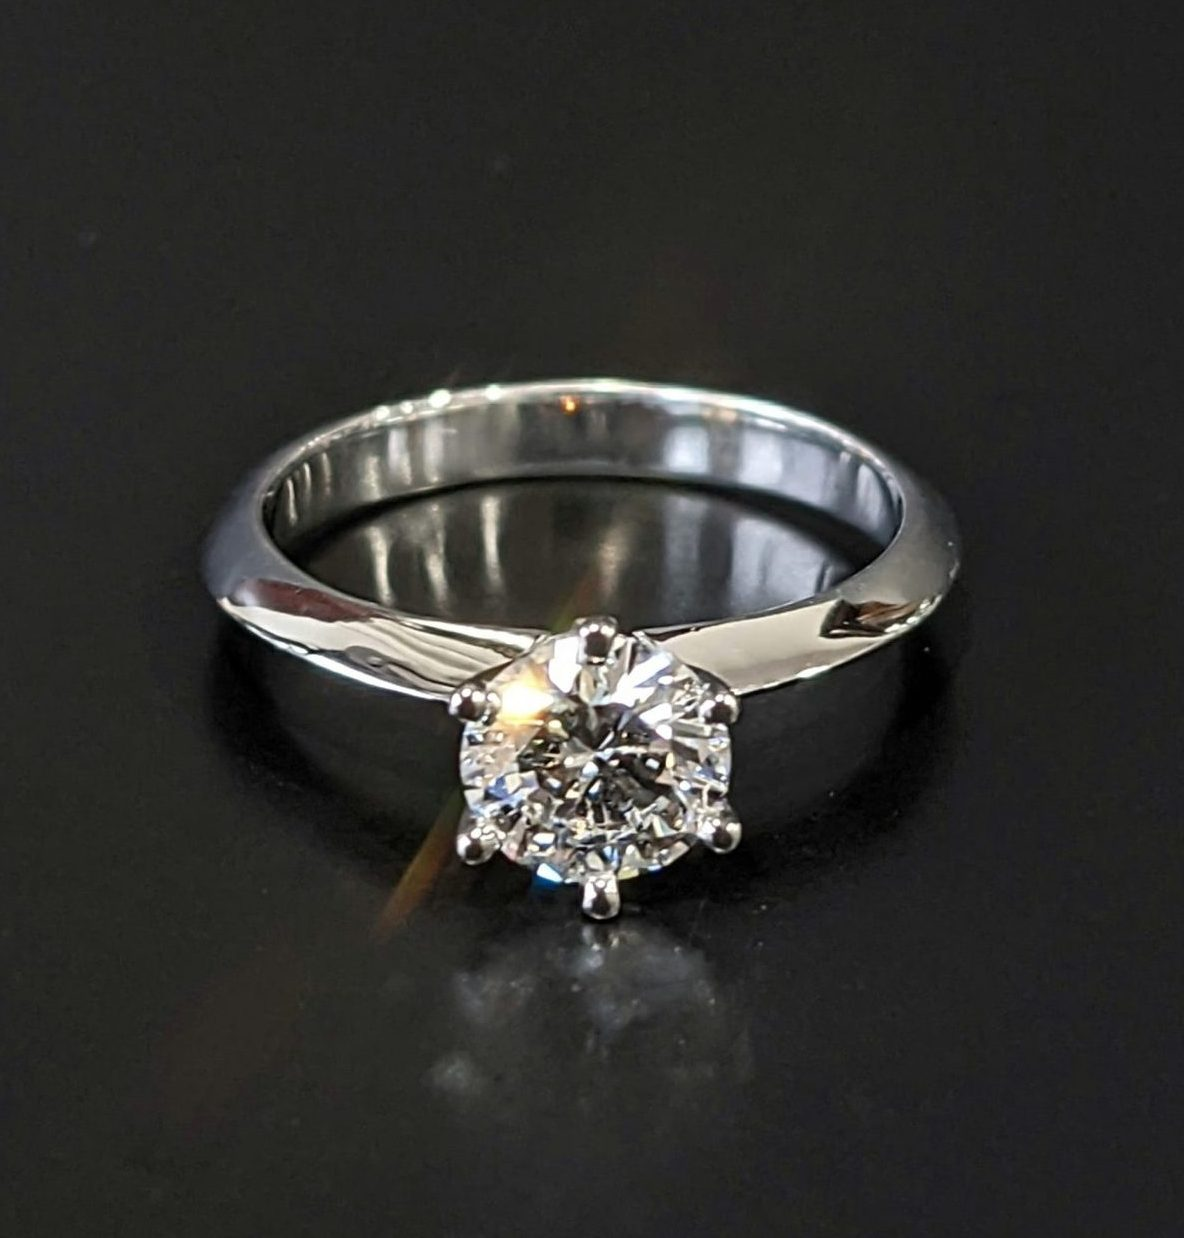 18ct white gold and diamond ladies solitaire engagement ring